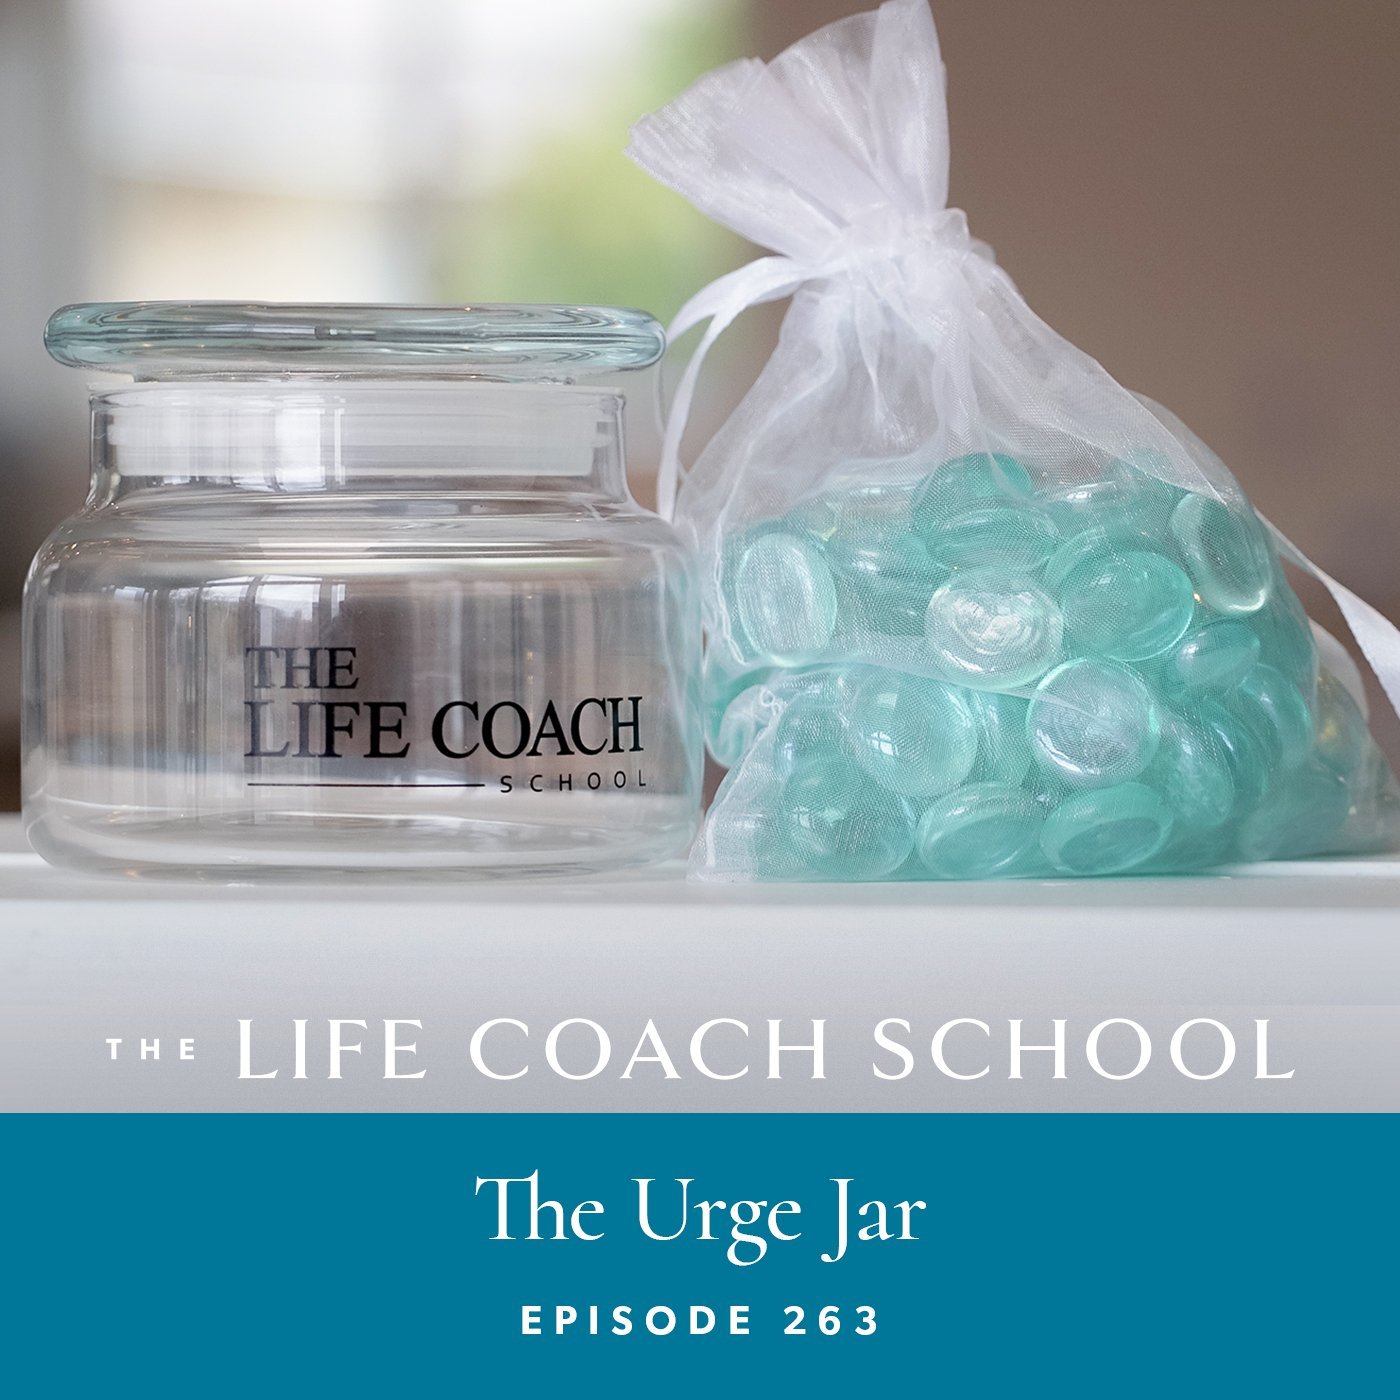 The Life Coach School Podcast with Brooke Castillo | Episode 263 | The Urge Jar